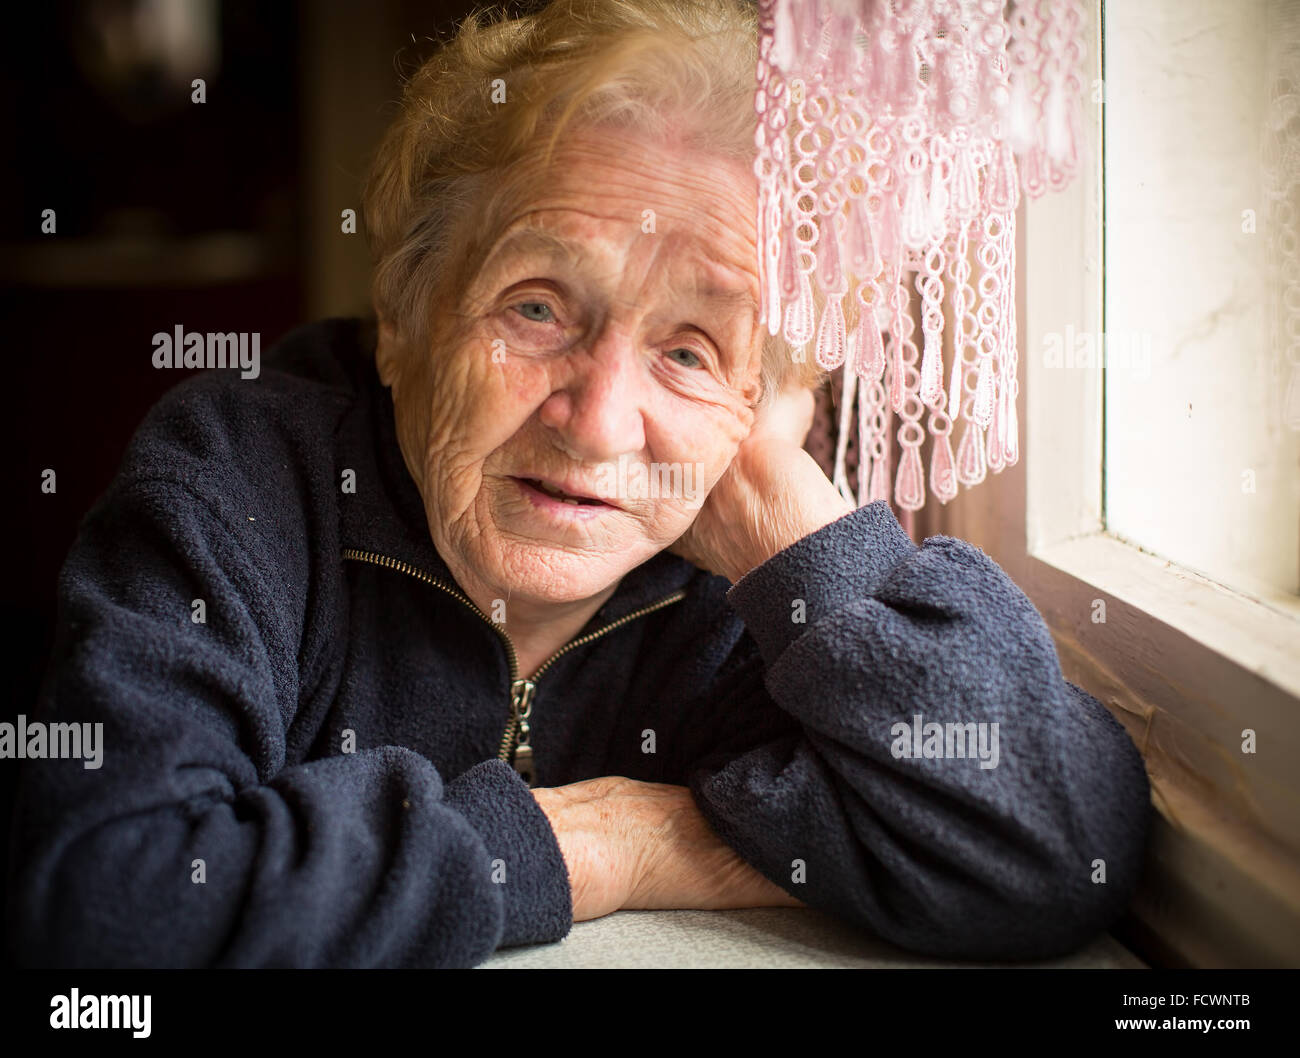 An elderly woman sits near the window. - Stock Image